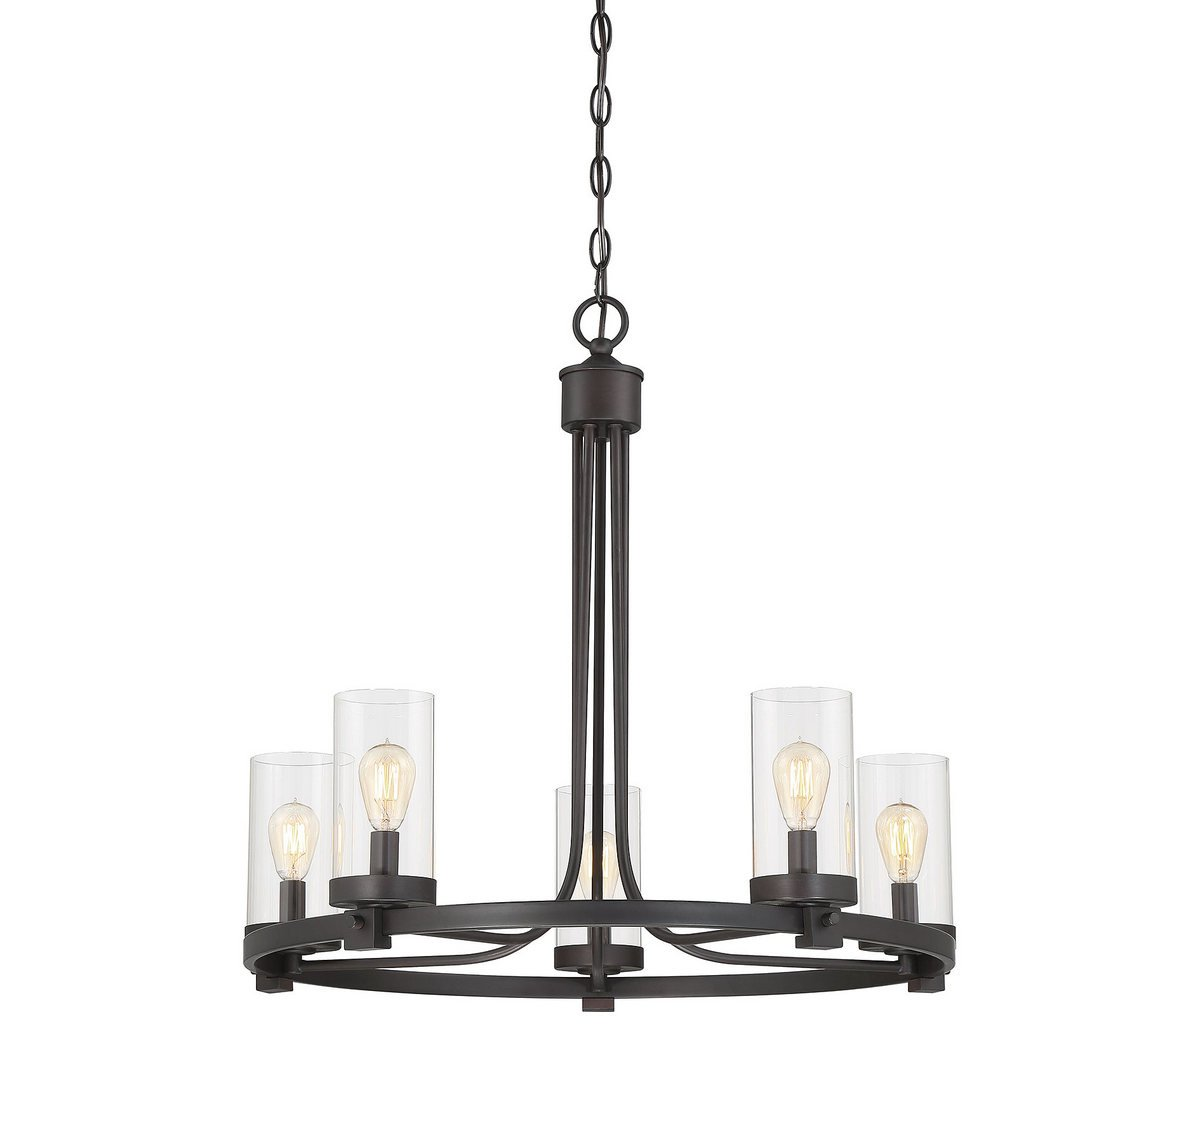 Trade Winds Lighting TW10048ORB 5-Light Transitional Rustic Bronze Hanging Chandelier with Clear Glass Cylindrical Shades, 60 Watts, in Oil Rubbed Bronze